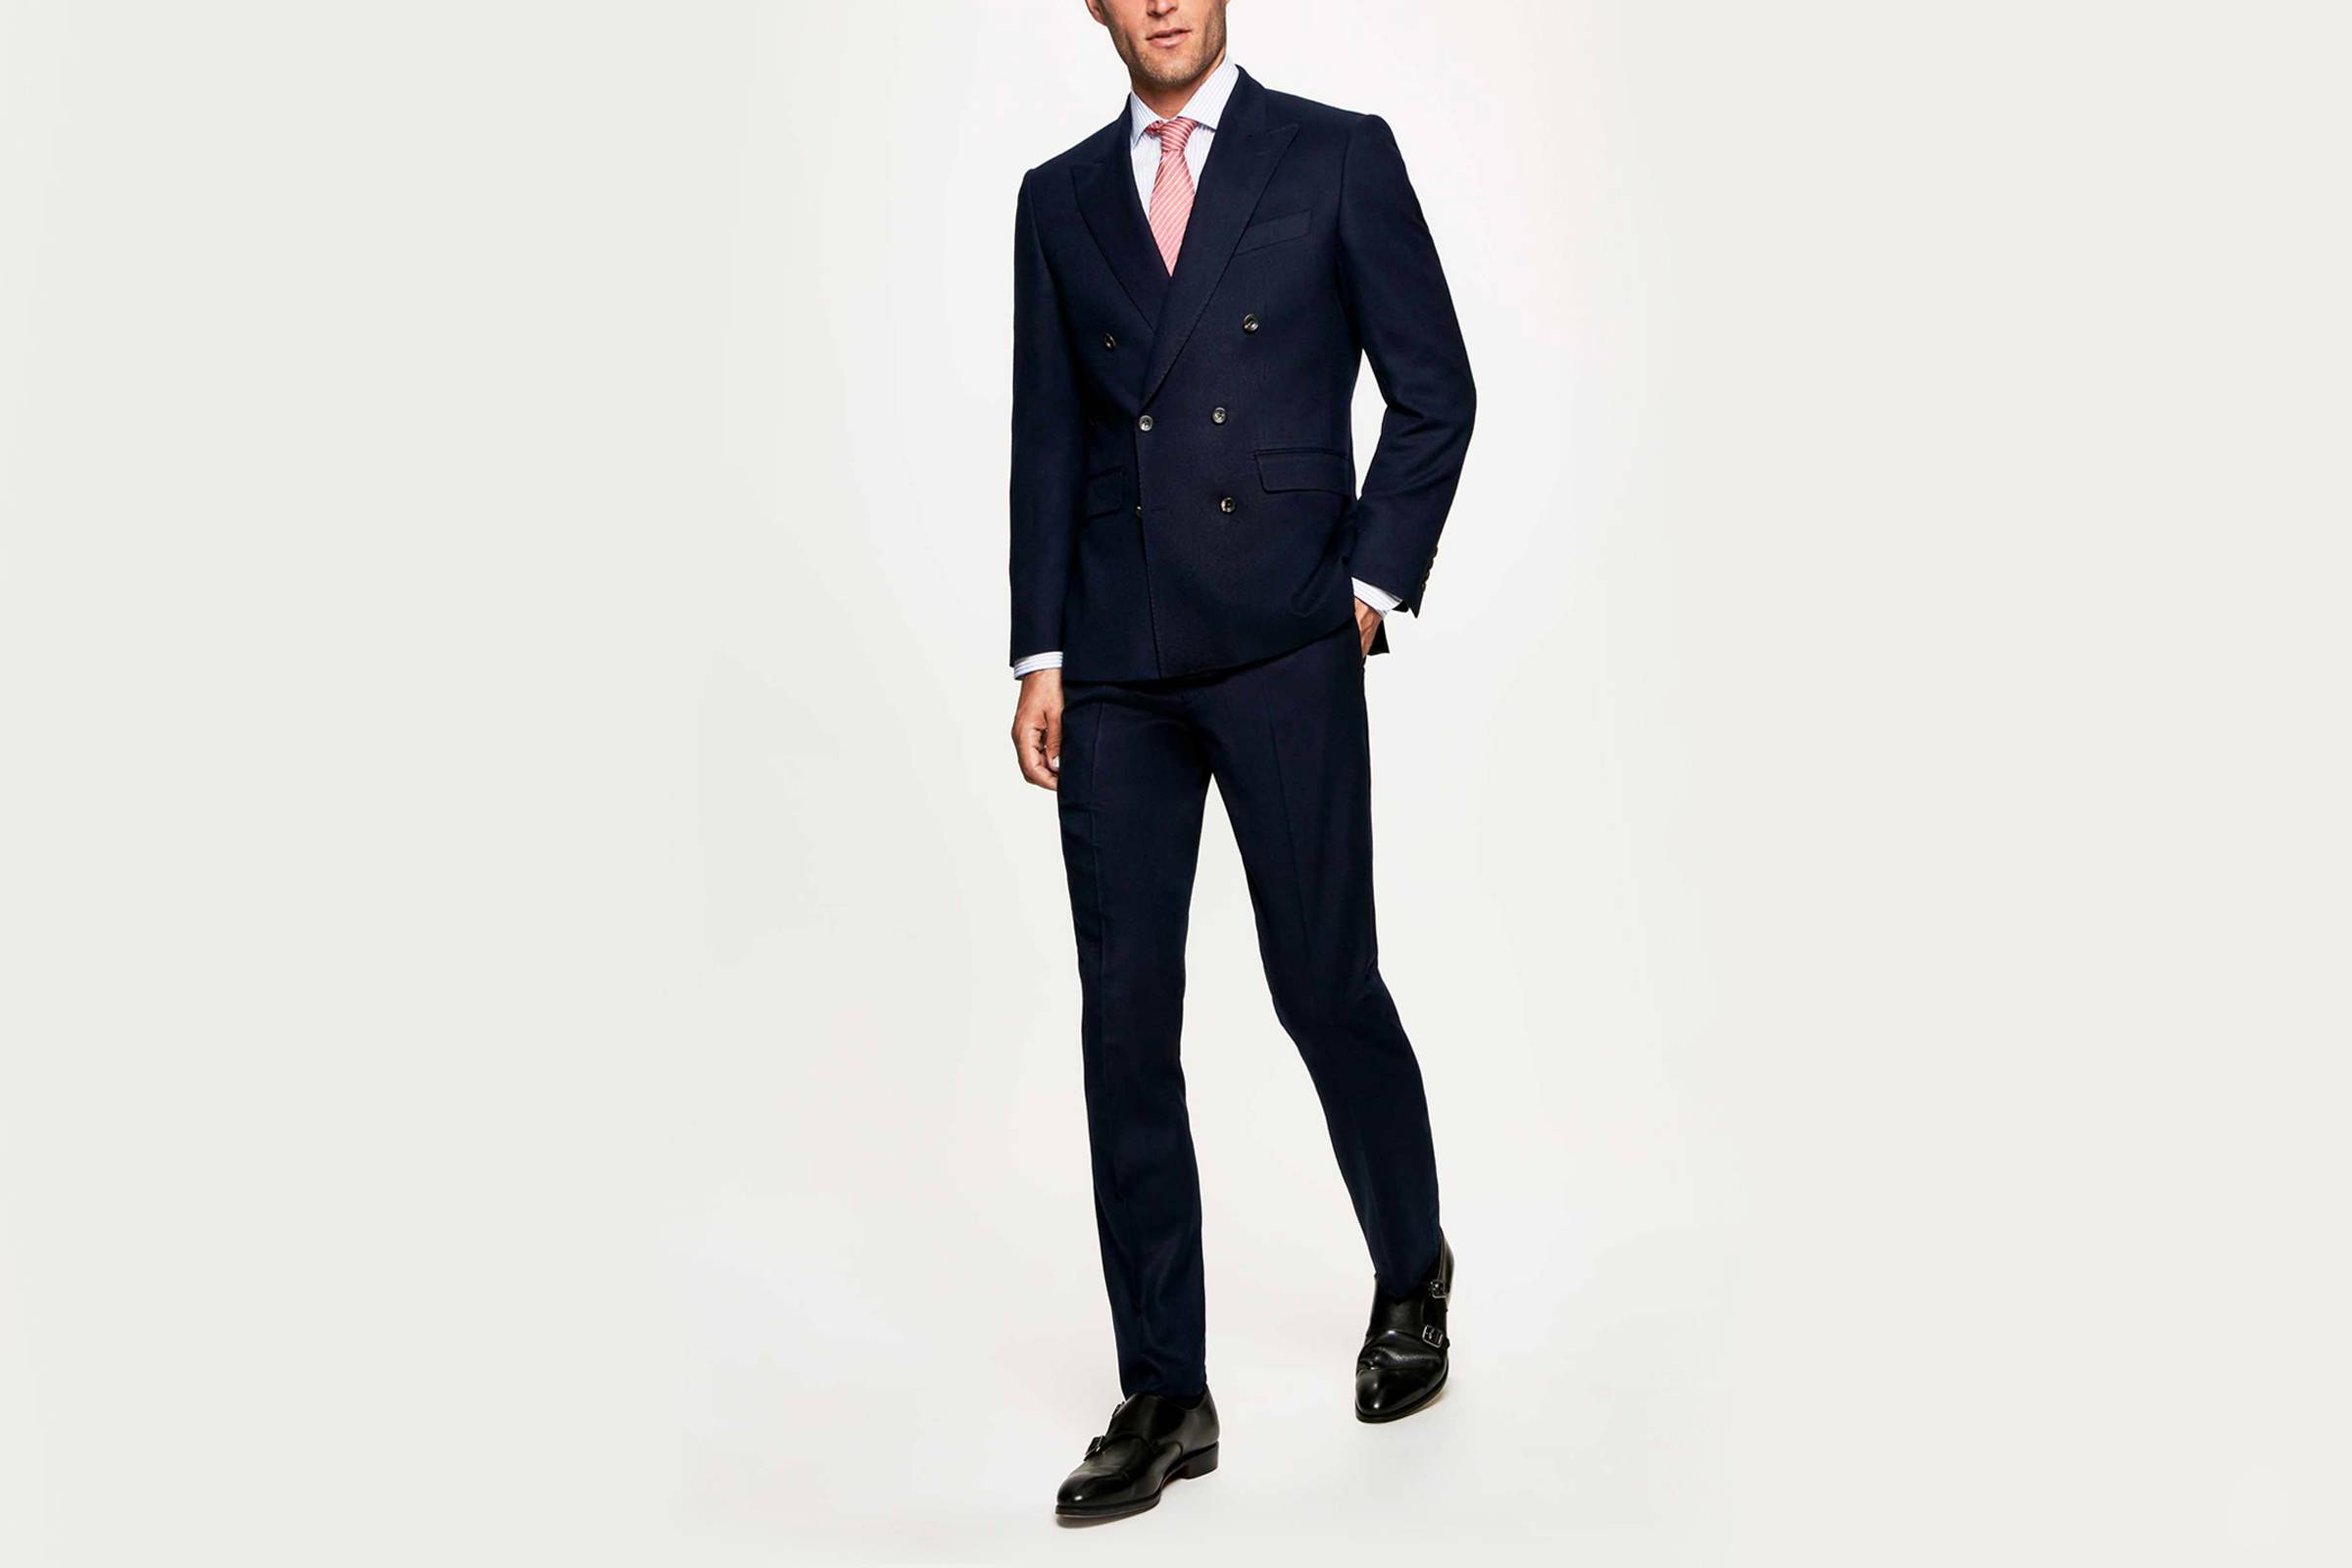 Types of Suits: Navy or Charcoal Double-Breasted Suit - Wool Flannel